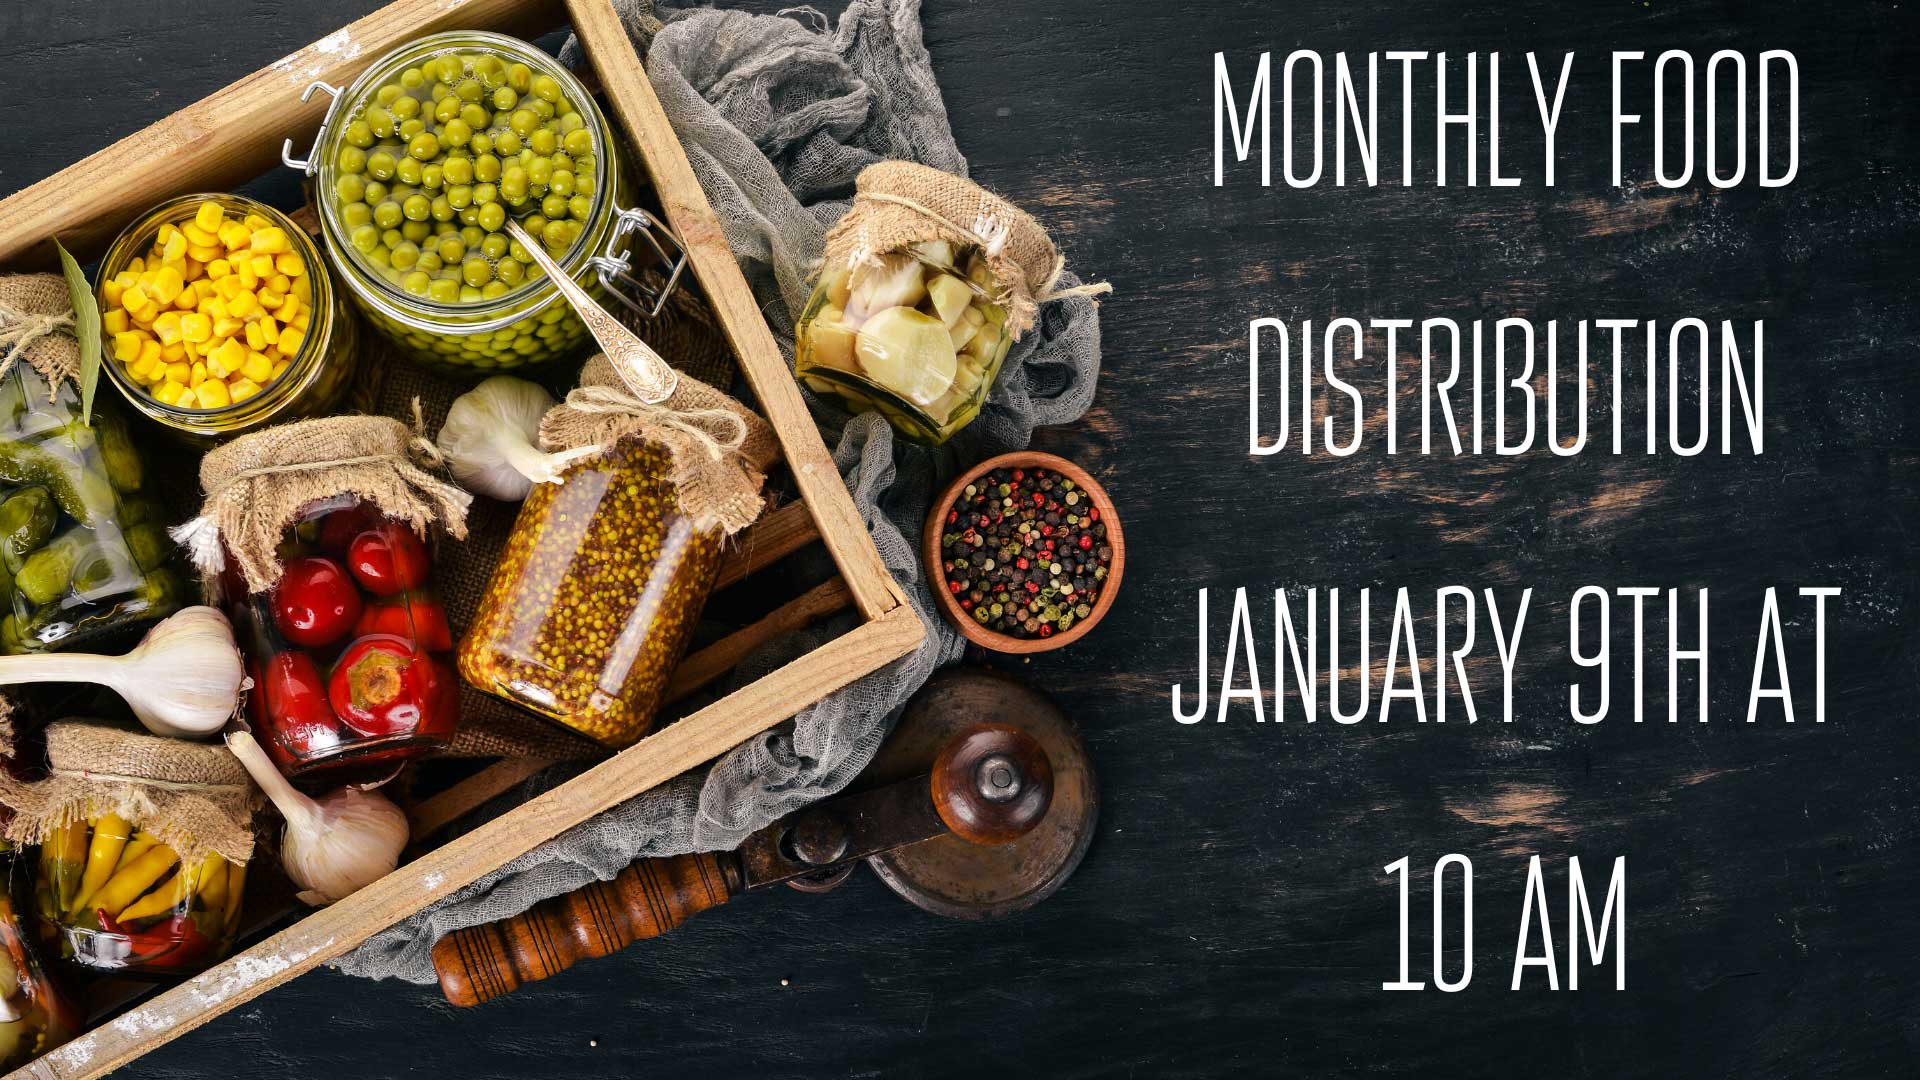 Monthly Food Distribution